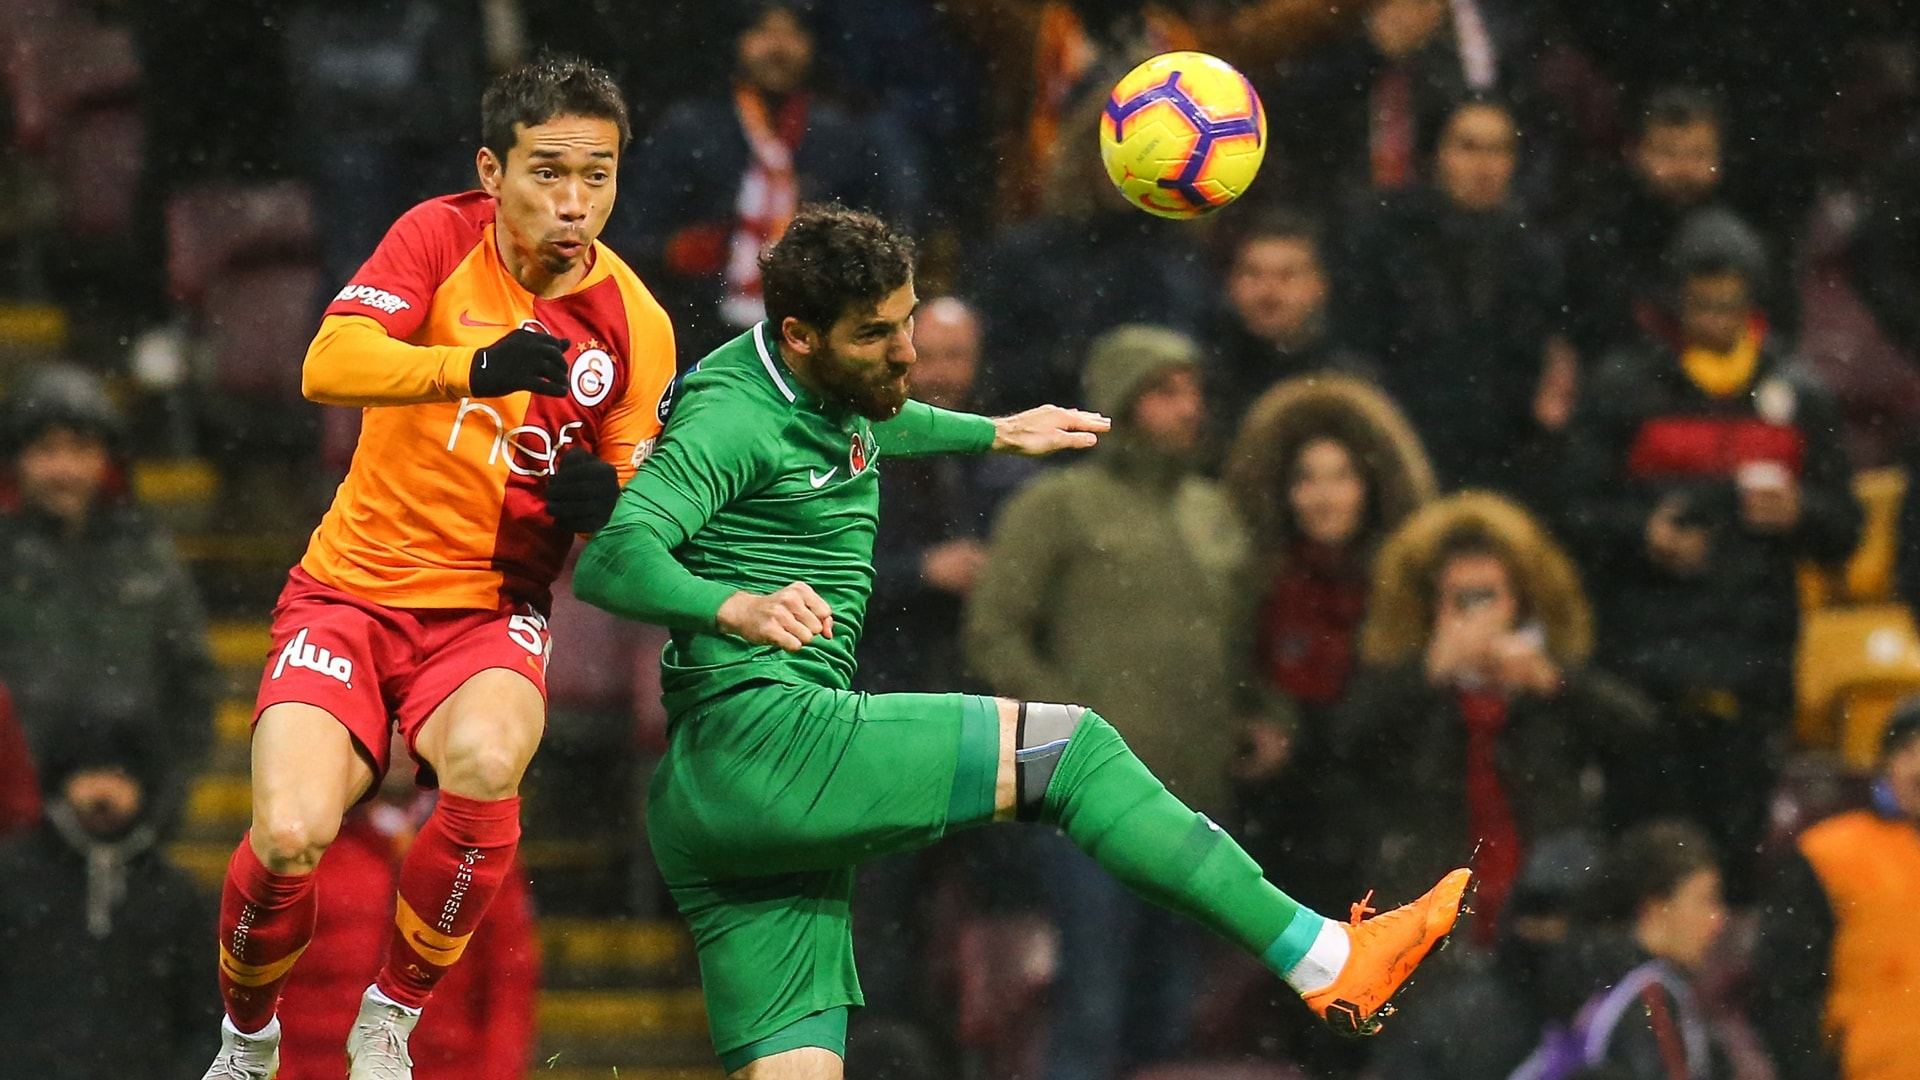 Akhisar Belediyespor vs Galatasaray Betting Predictions